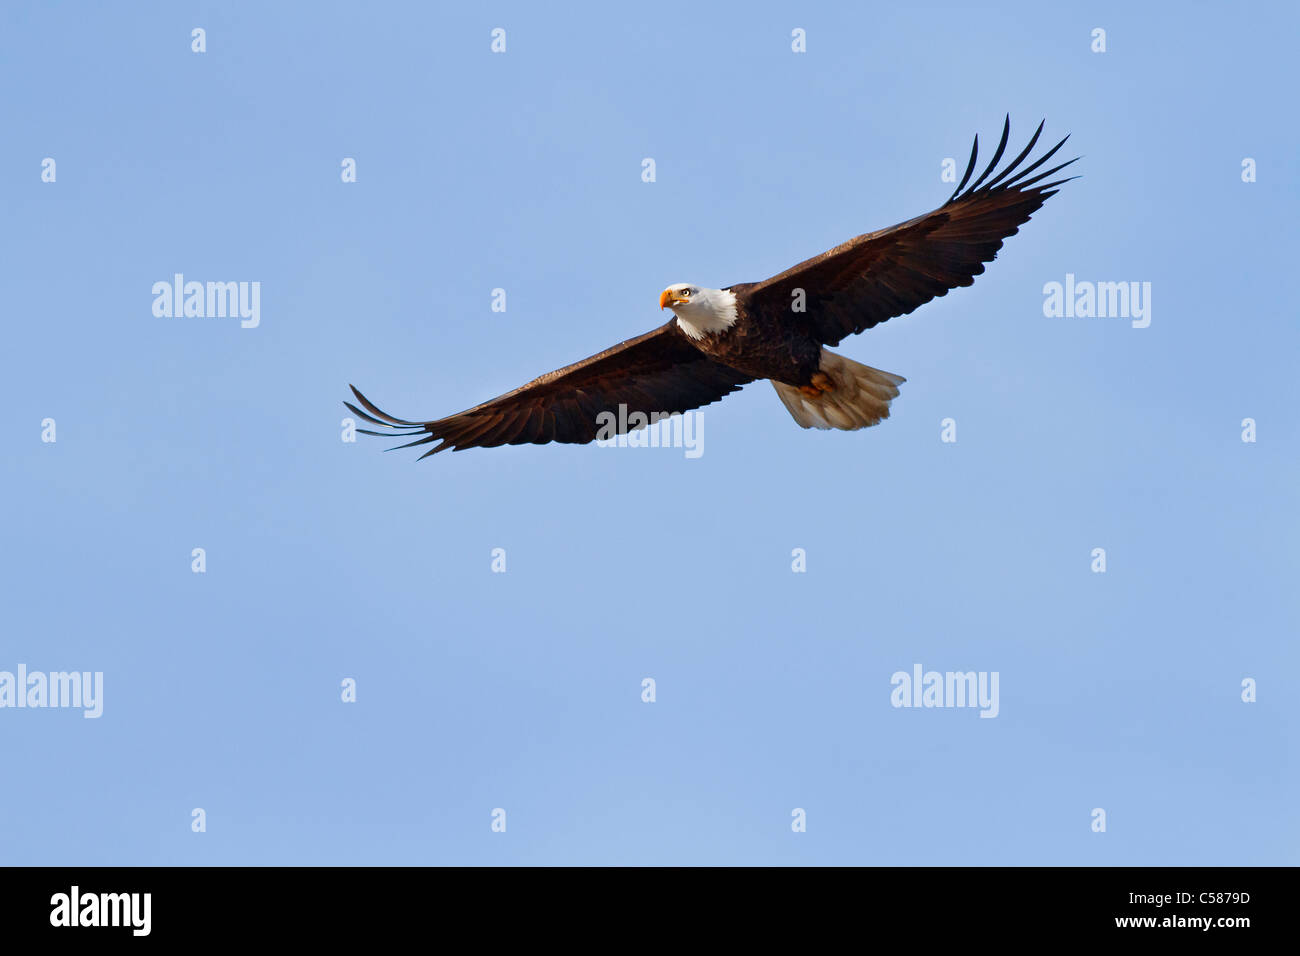 Bald Eagle with wings fully extended flying by - Stock Image